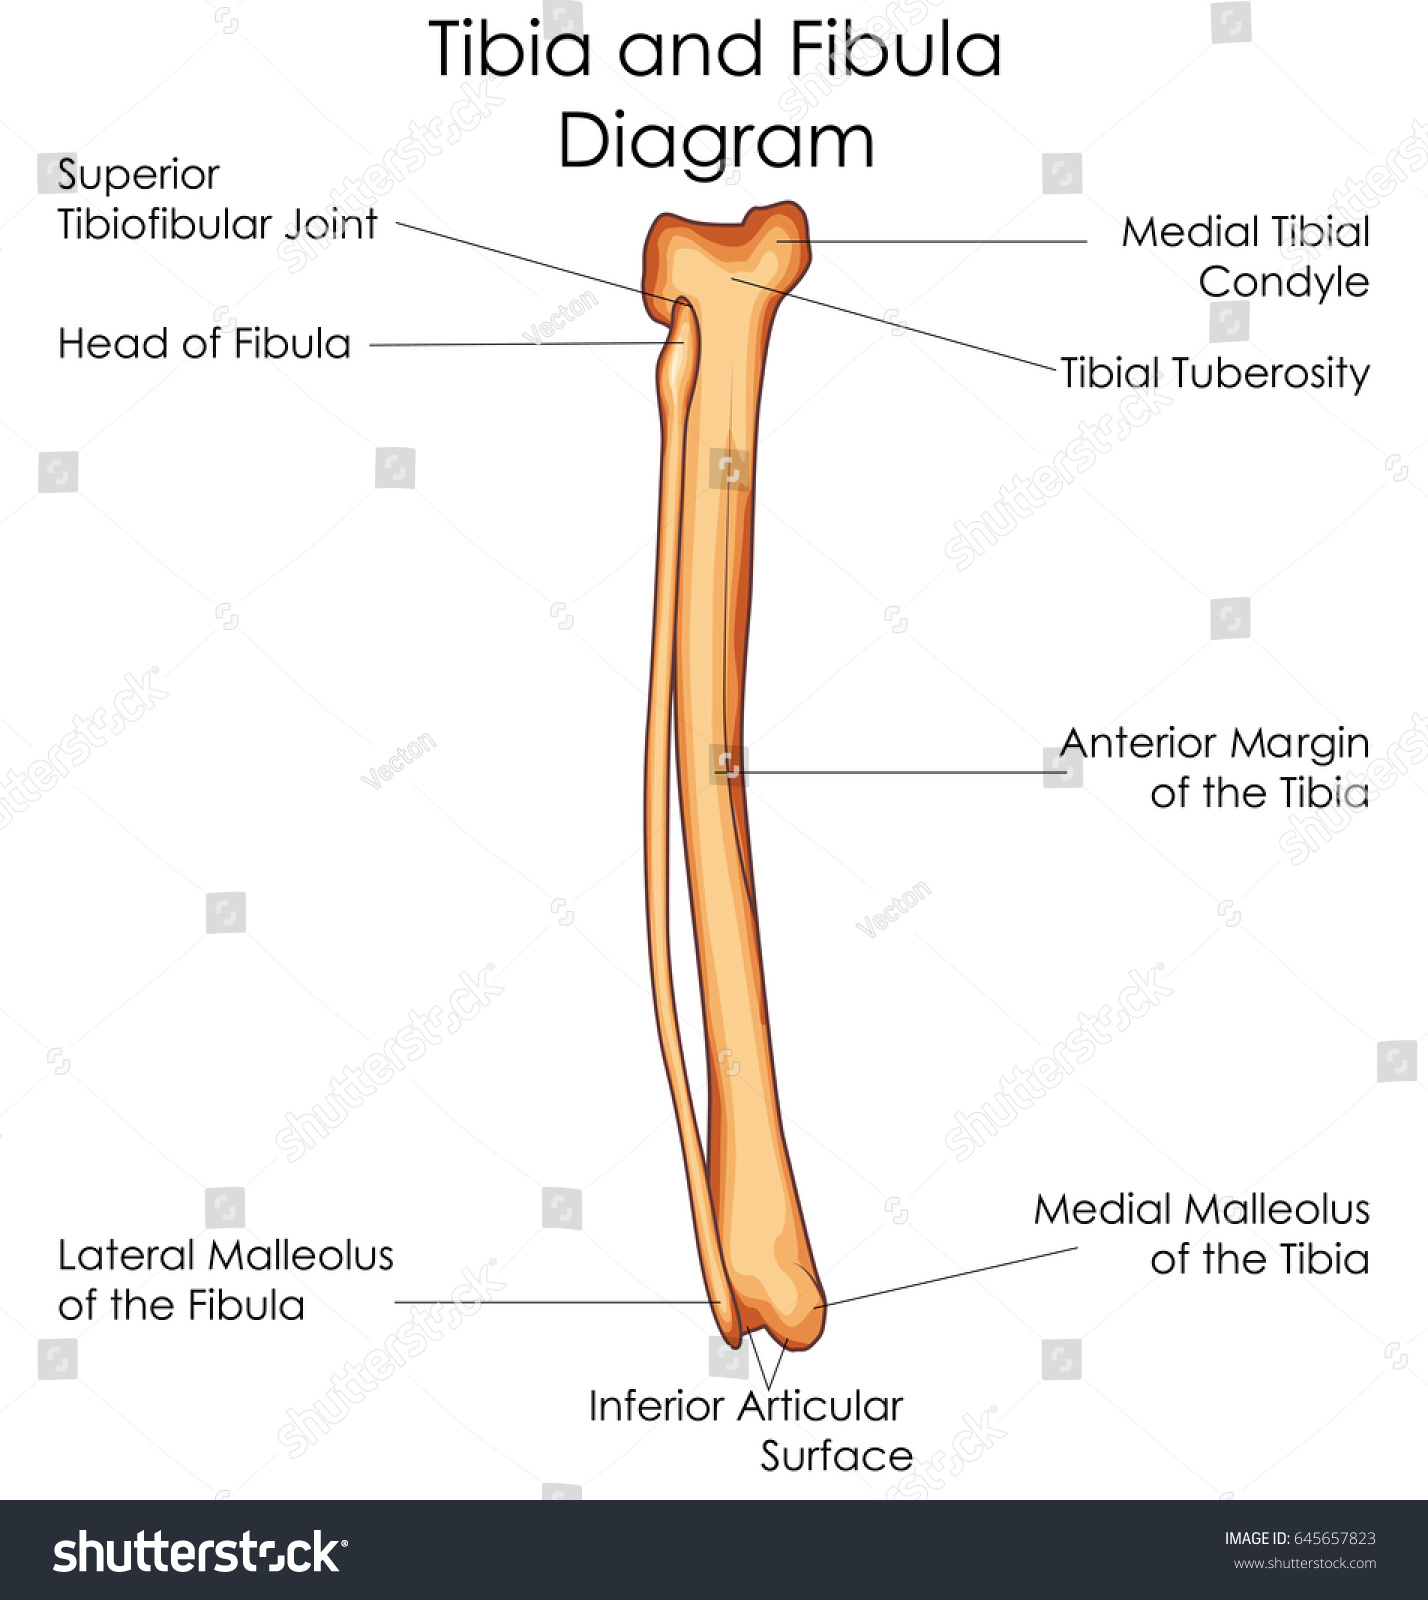 tibia and fibula blank diagram land cruiser electrical wiring related keywords long tail